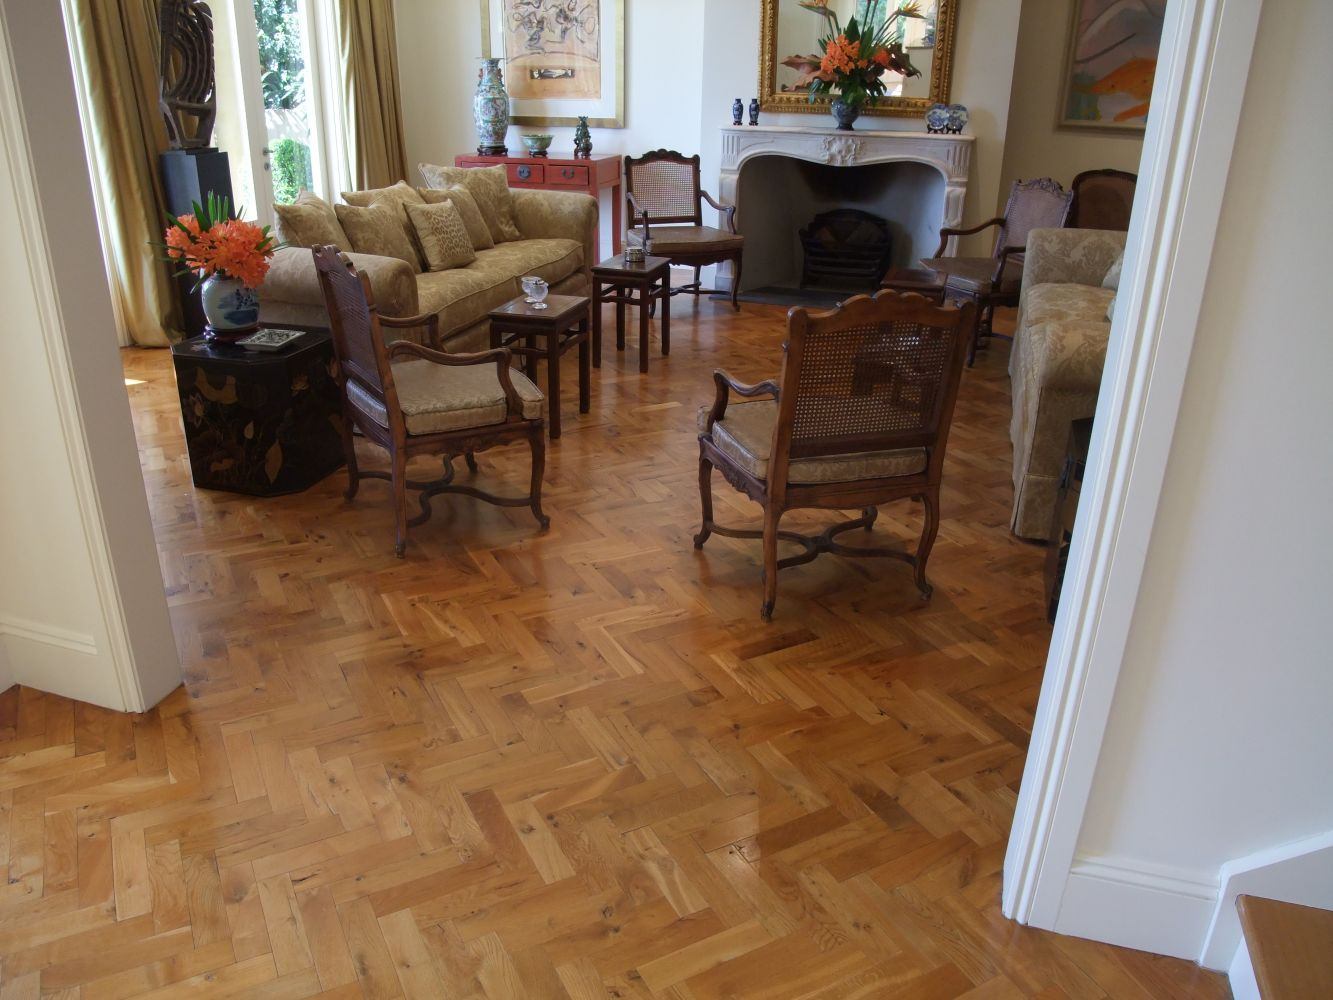 20140324043417221_website_parquetry_FeatureGradeoakparquet130.jpg